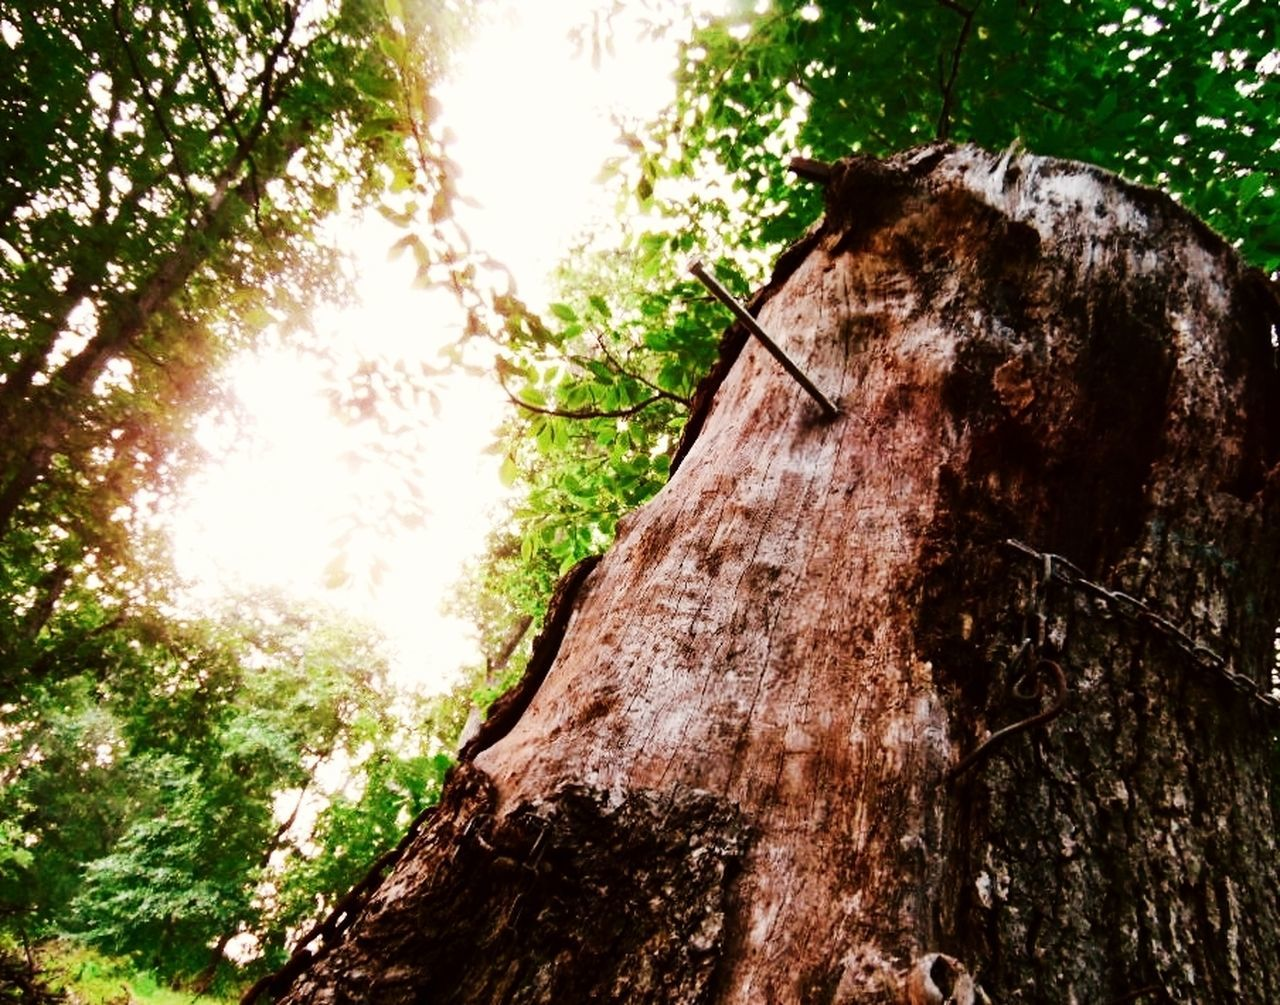 tree, tree trunk, wood - material, no people, deforestation, day, nature, lumber industry, log, tree stump, outdoors, low angle view, sunlight, branch, bark, forest, close-up, growth, dead tree, tree ring, axe, sky